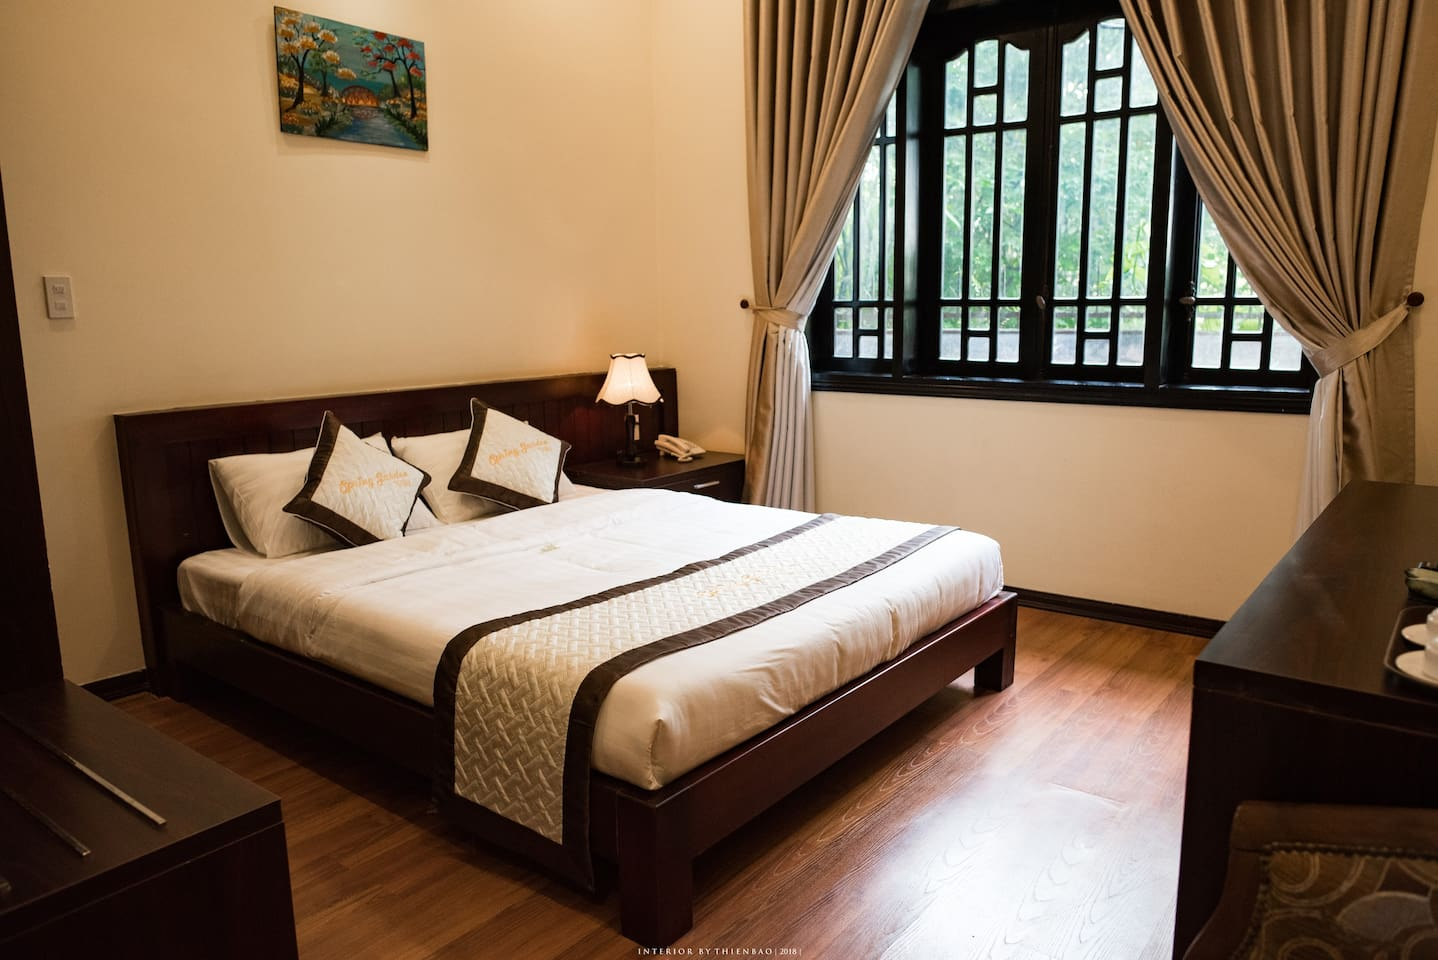 Simple and cozy, Camellia is double rooms garden view with a smooth and poetical space. Guests will feel very comfortable to enjoy the peace after a day visiting Hue